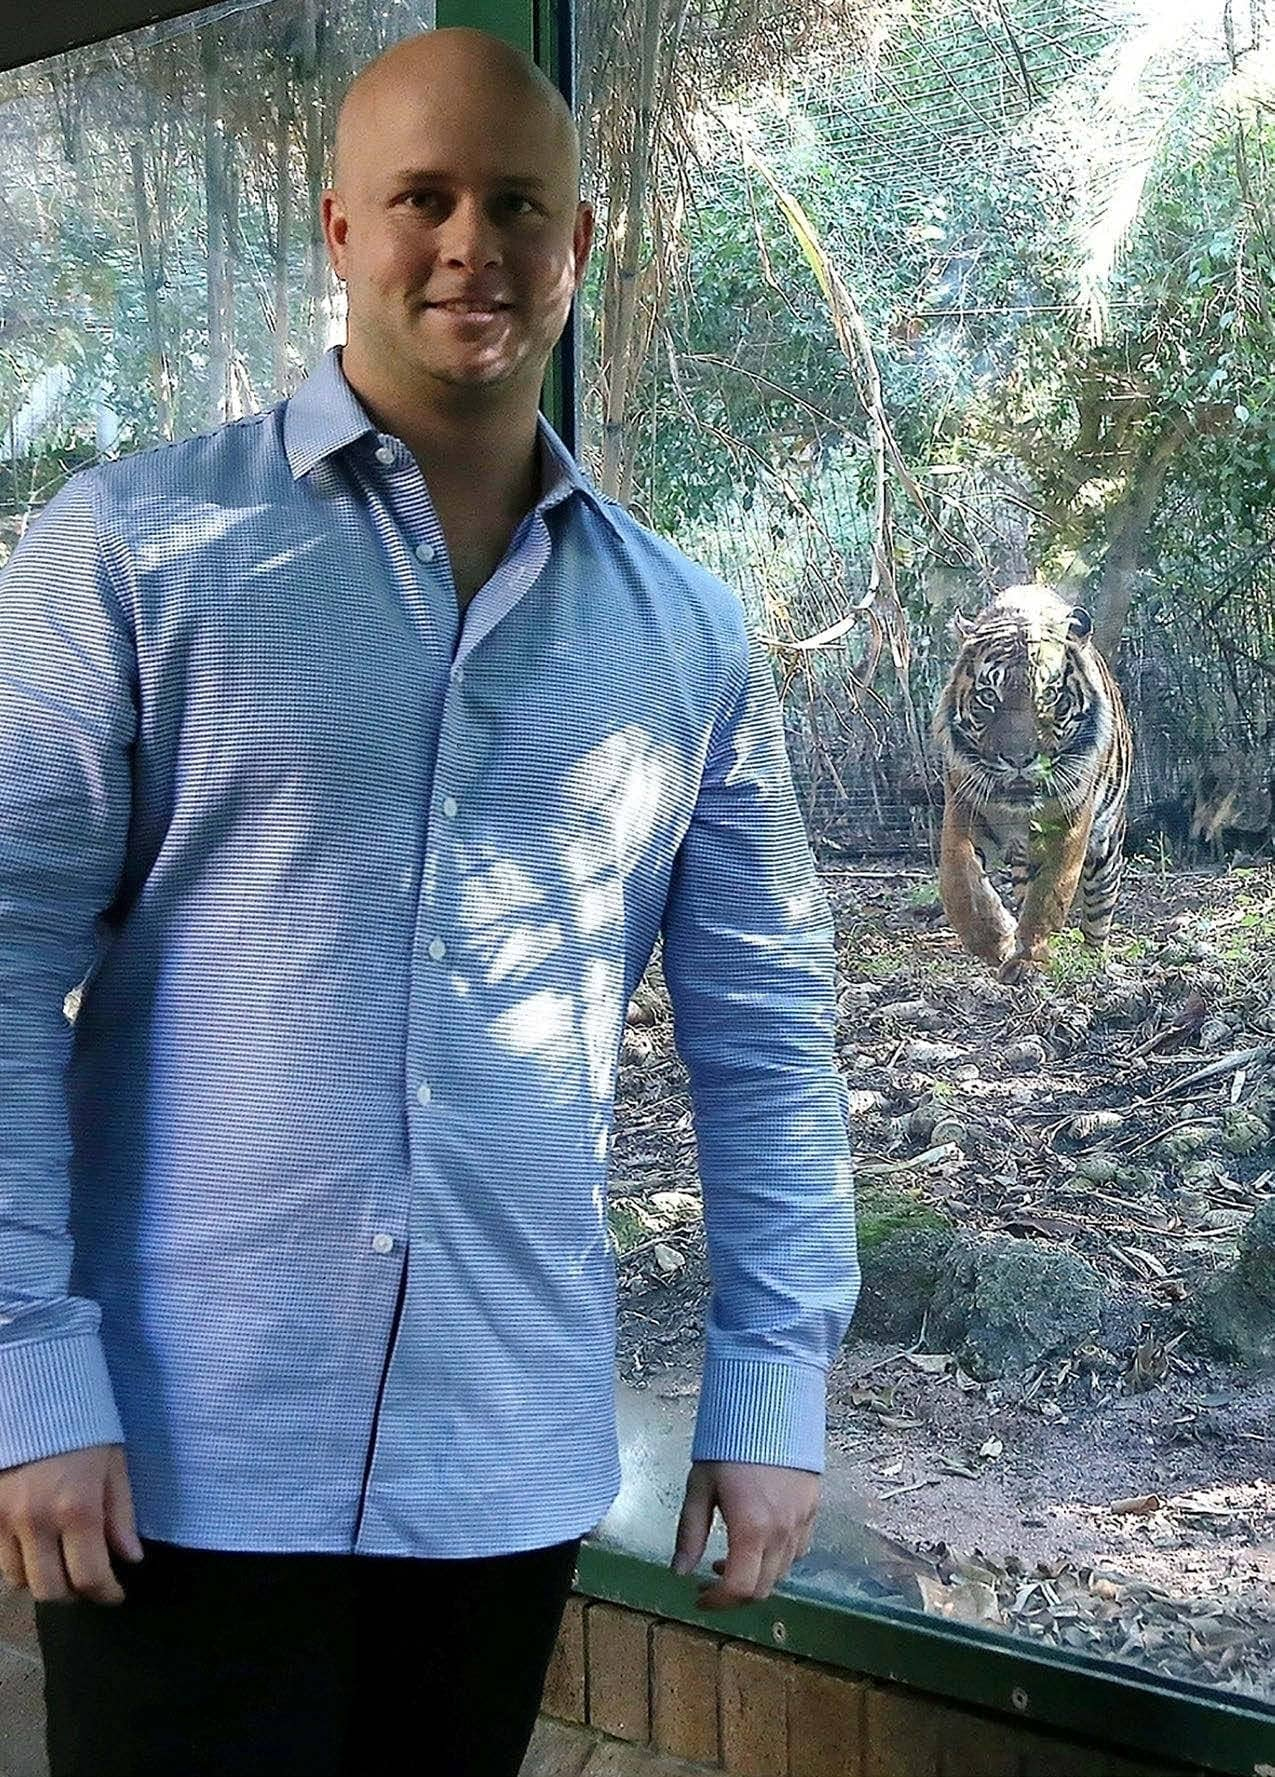 MEET AUSTRALIA'S TIGER KING